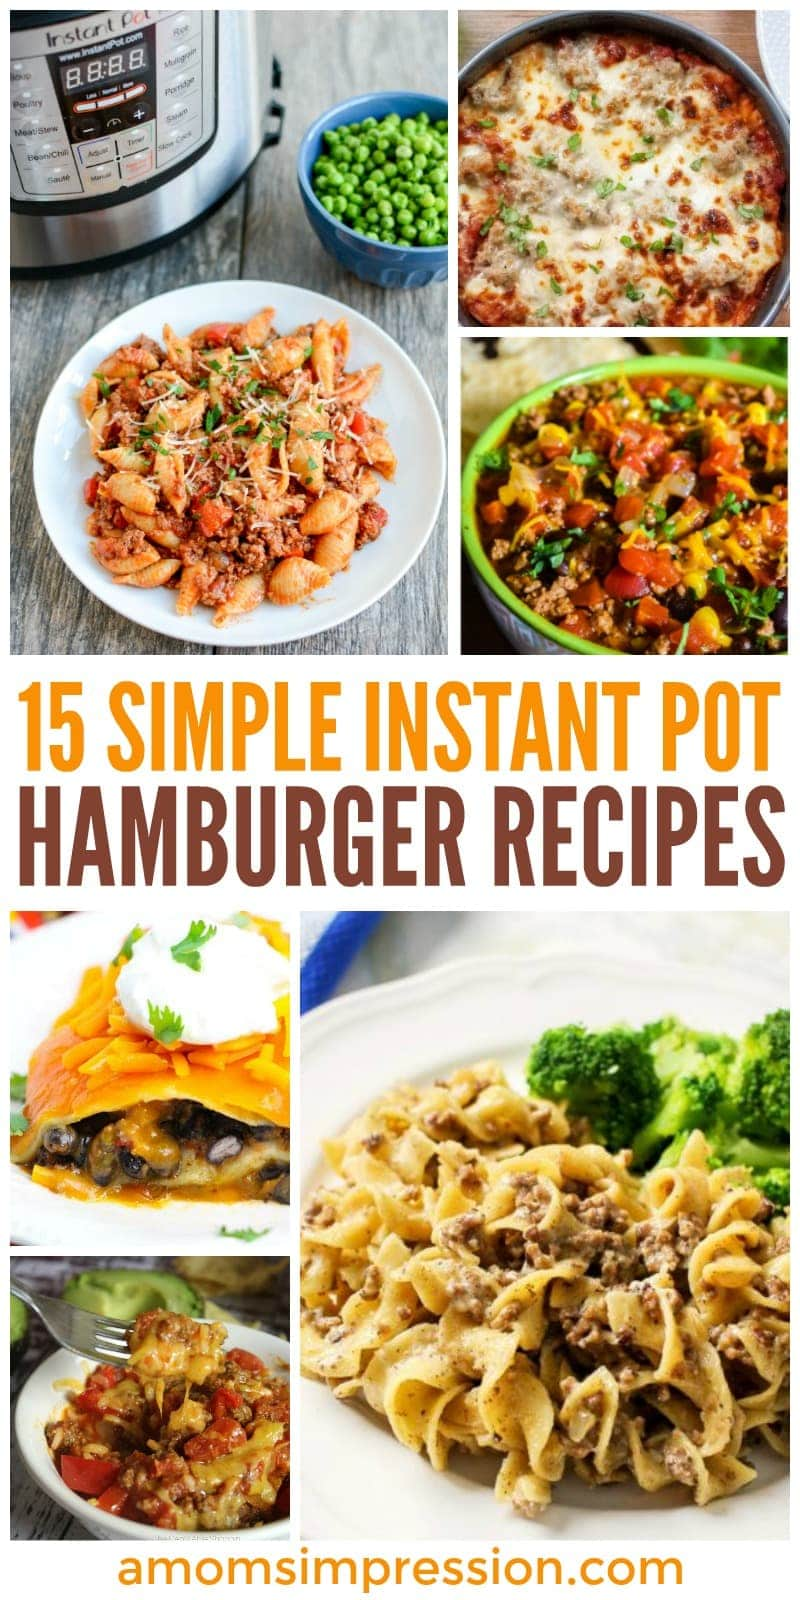 15 Simple Instant Pot Hamburger Recipes